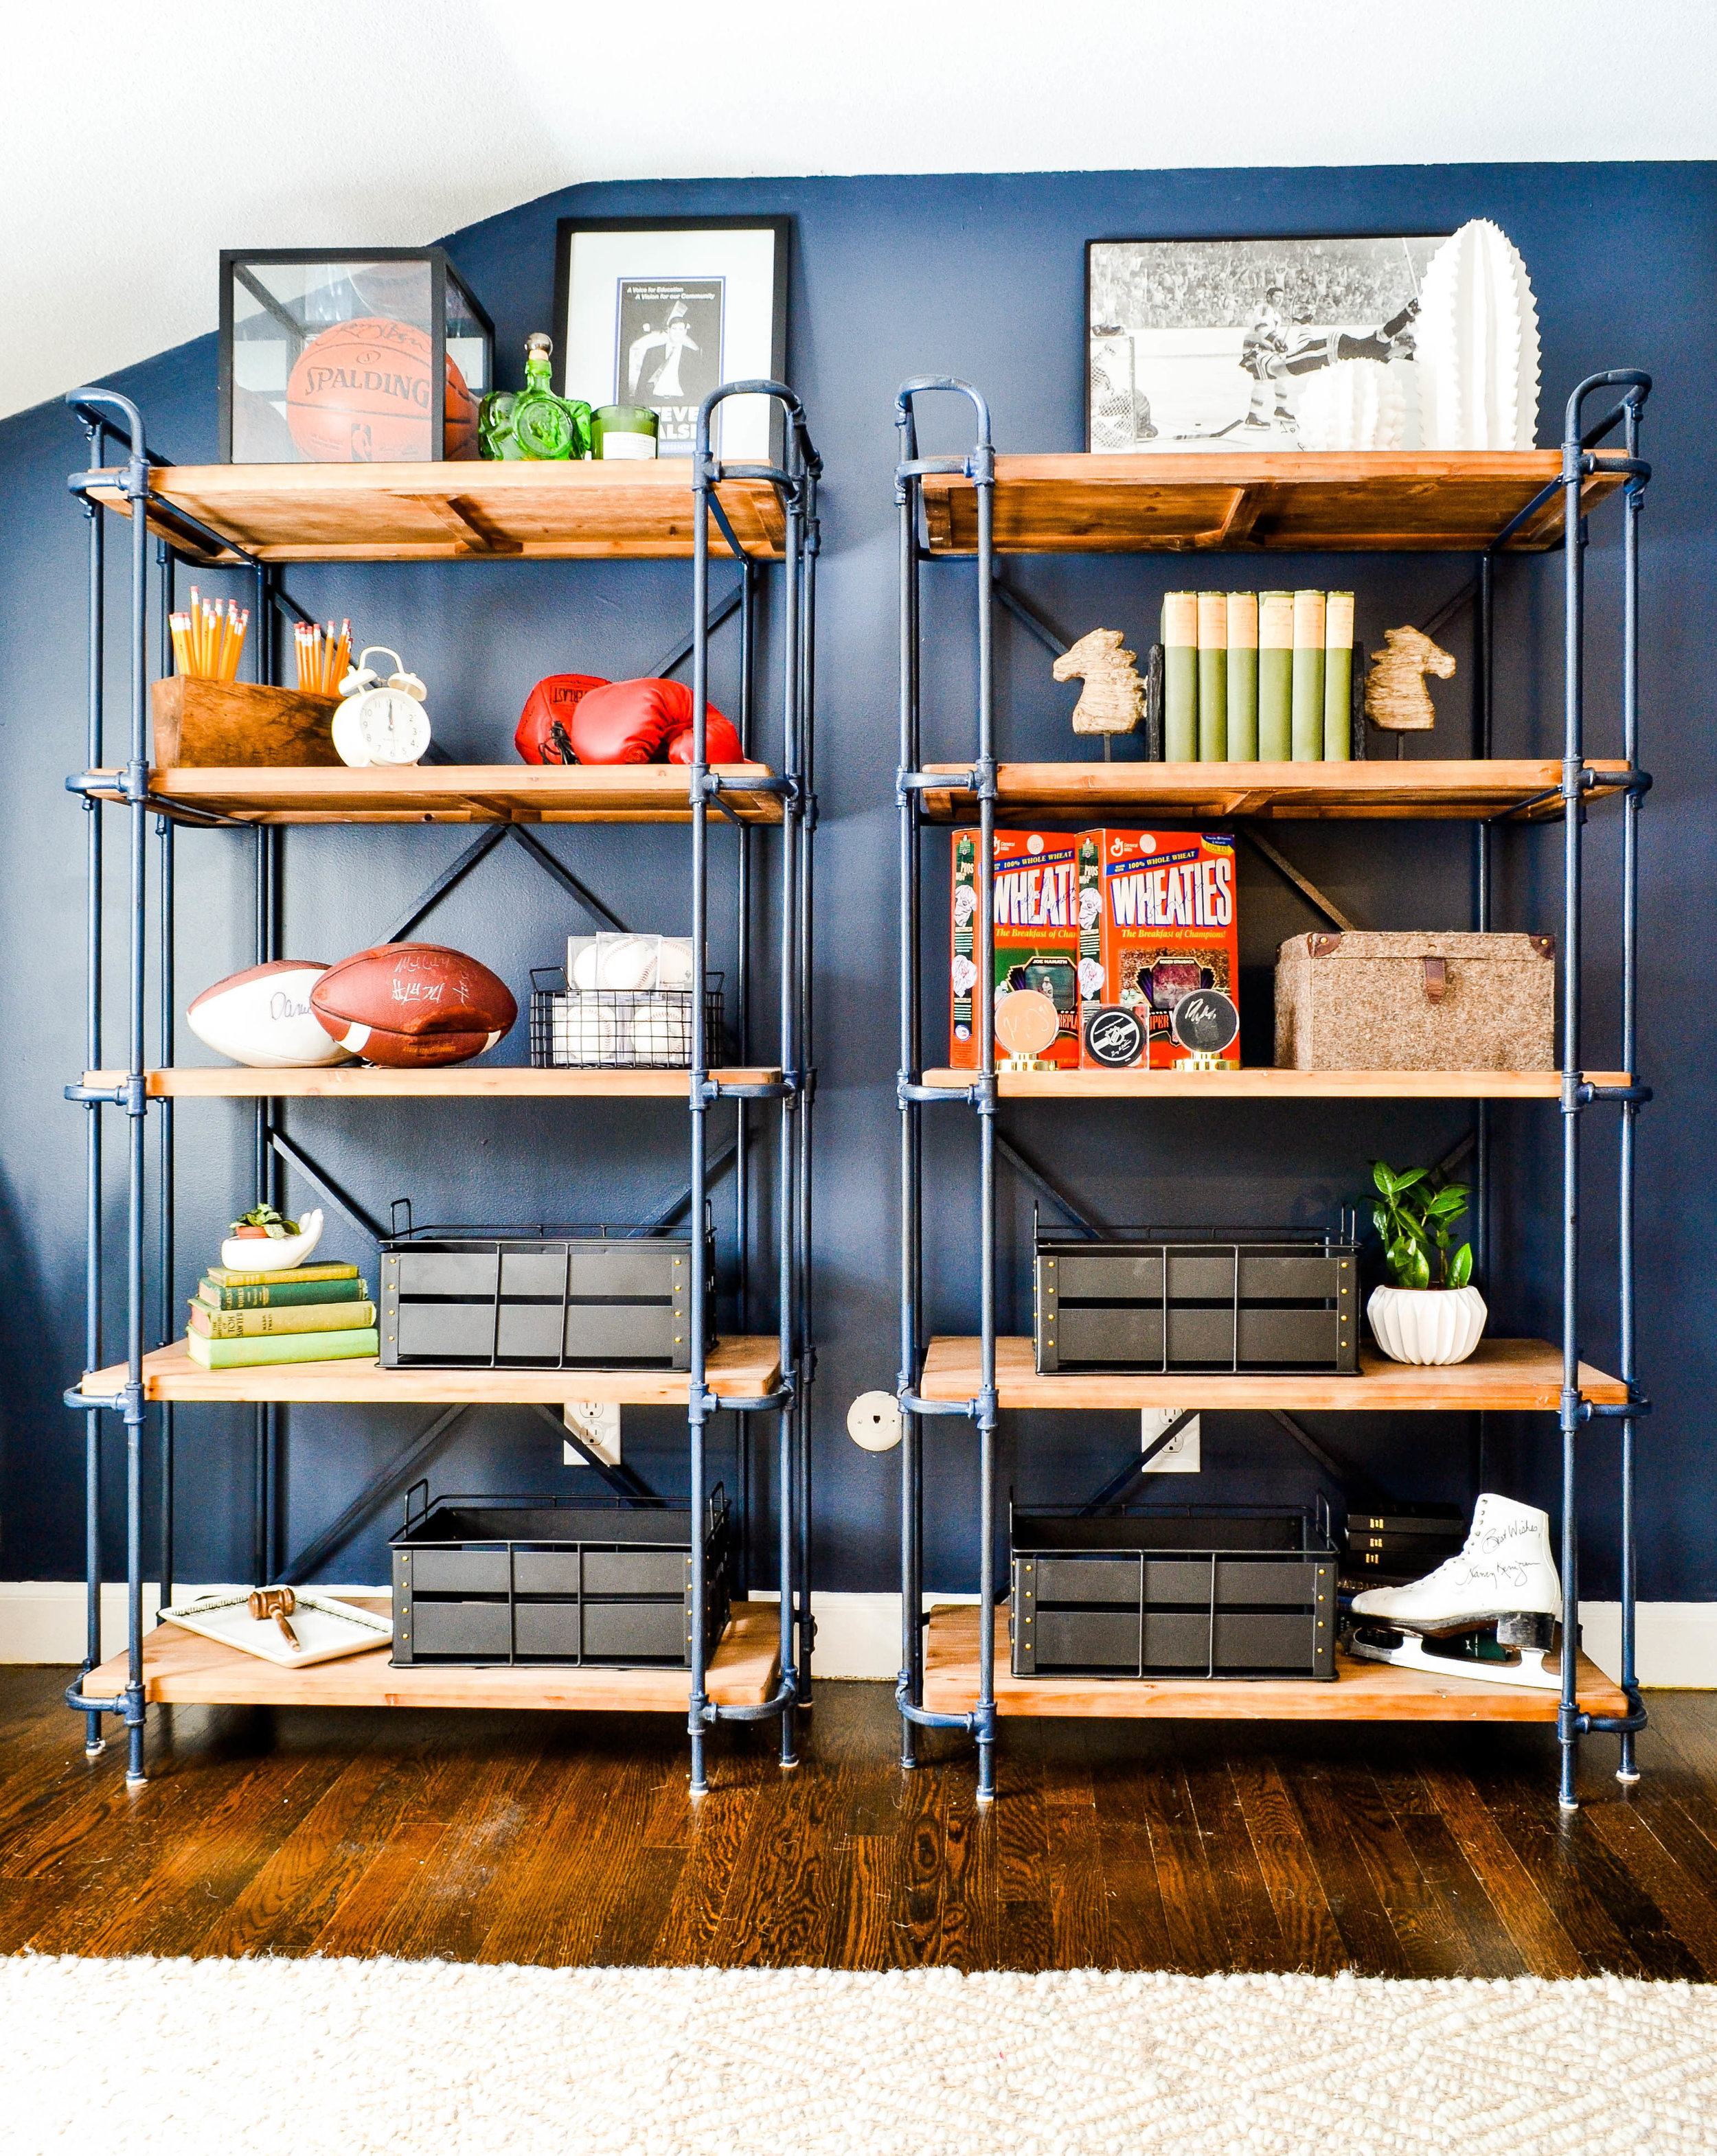 Mayberry Project open shelves styled